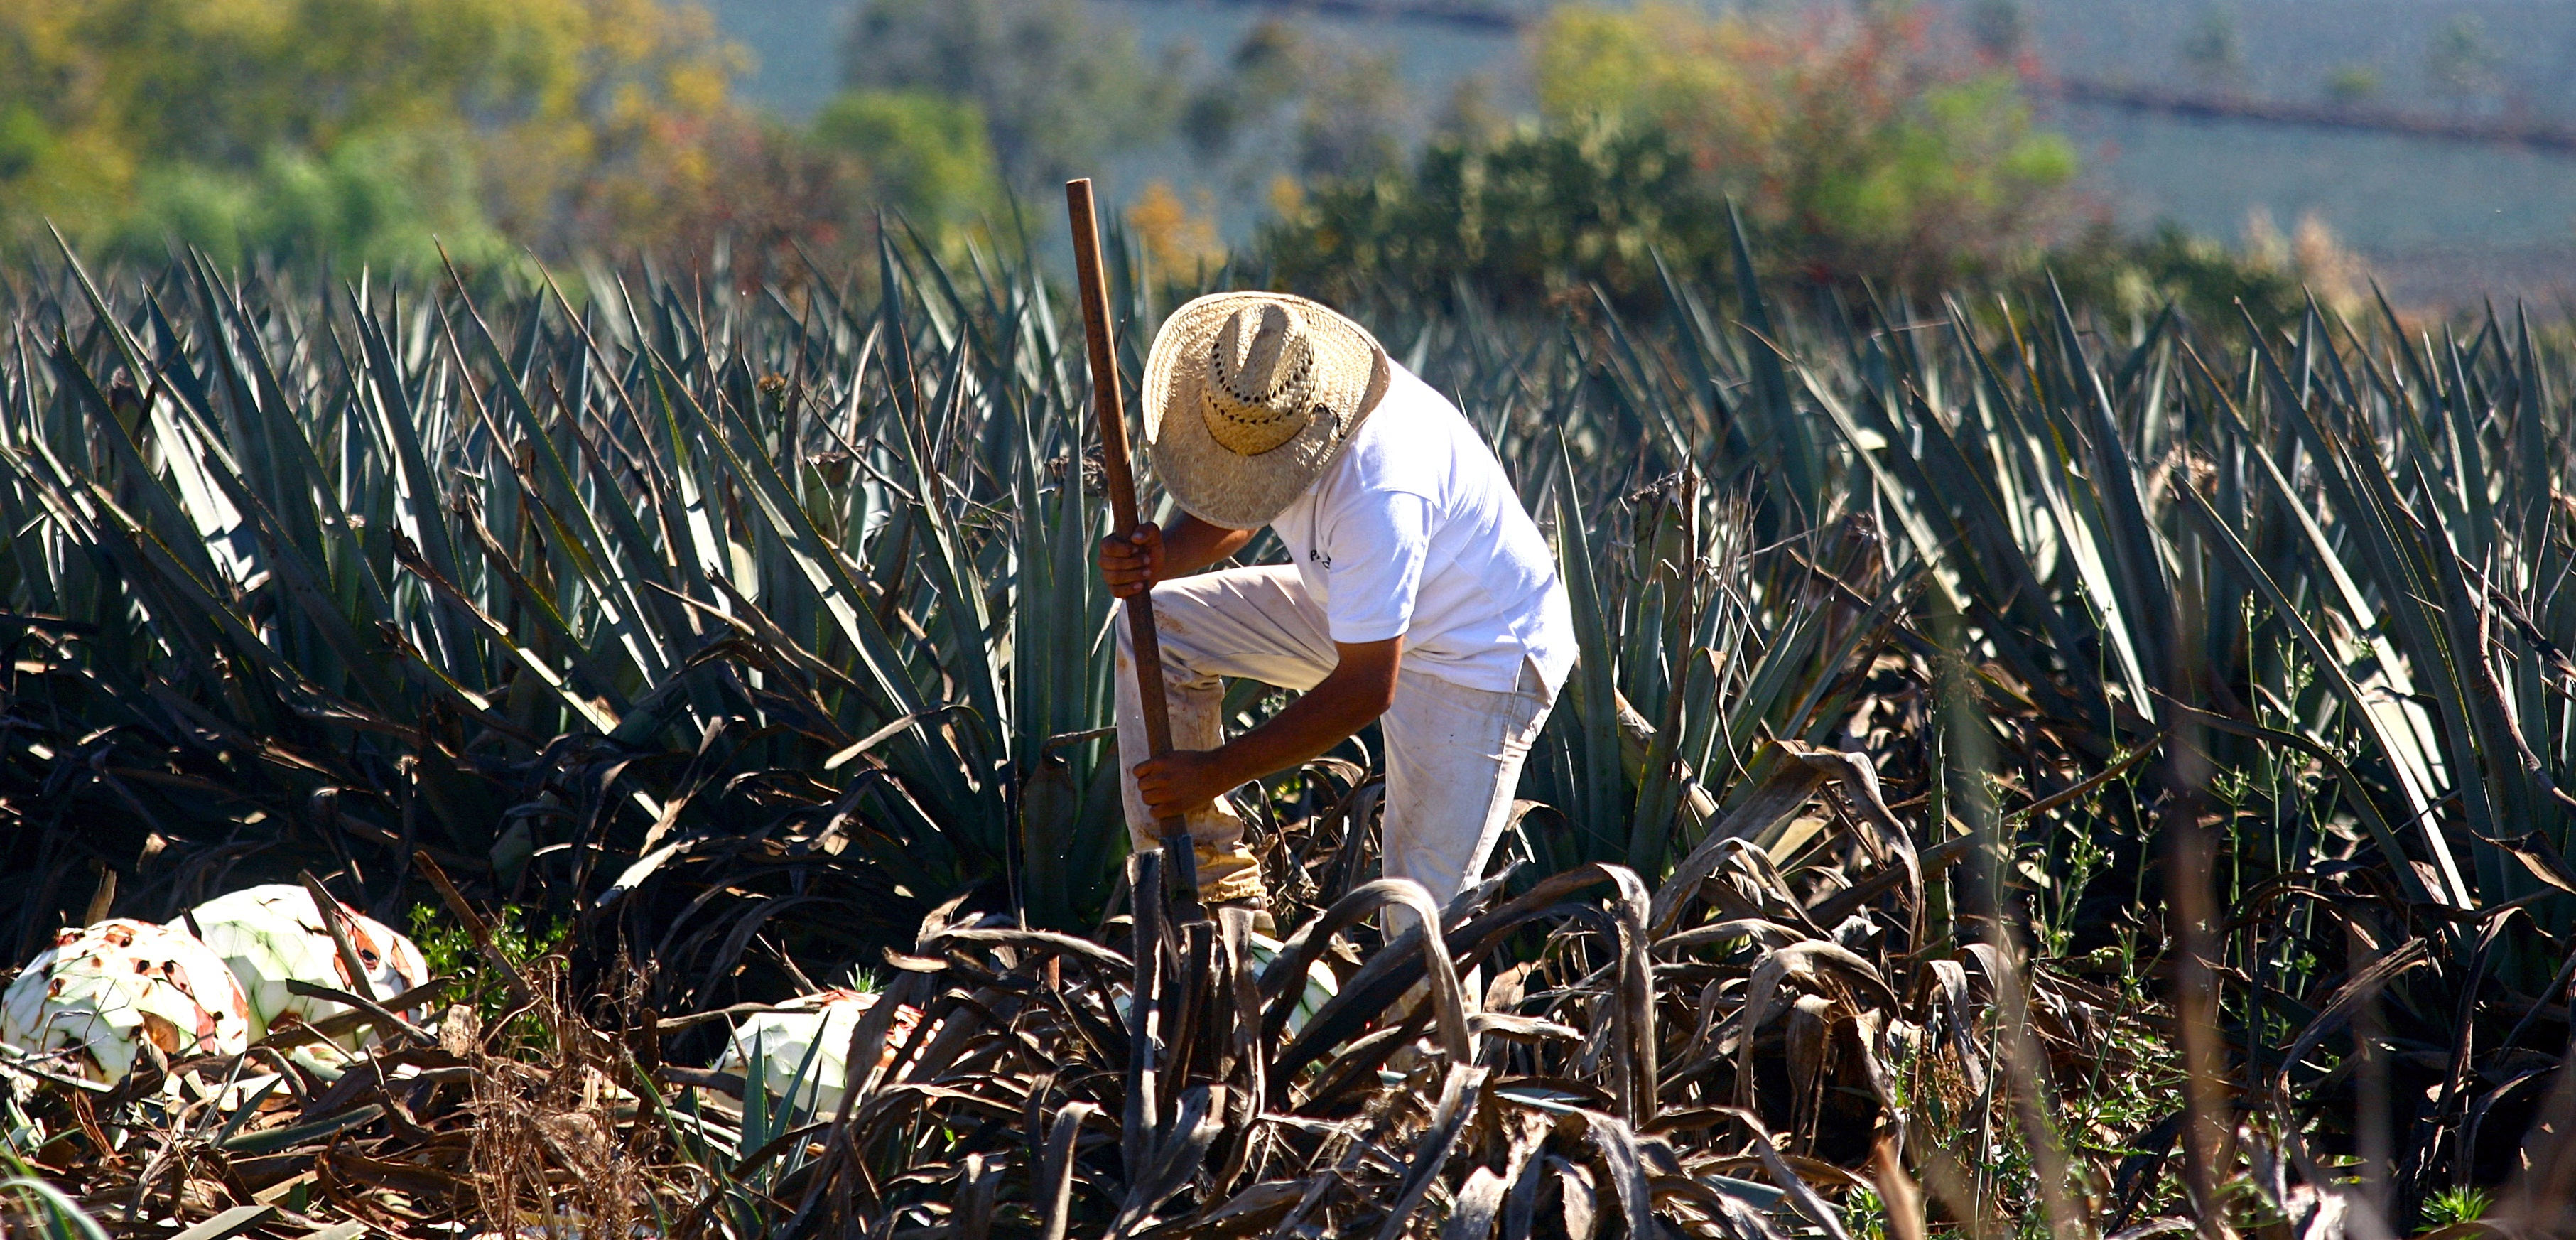 A farmer harvests a blue agave plant for